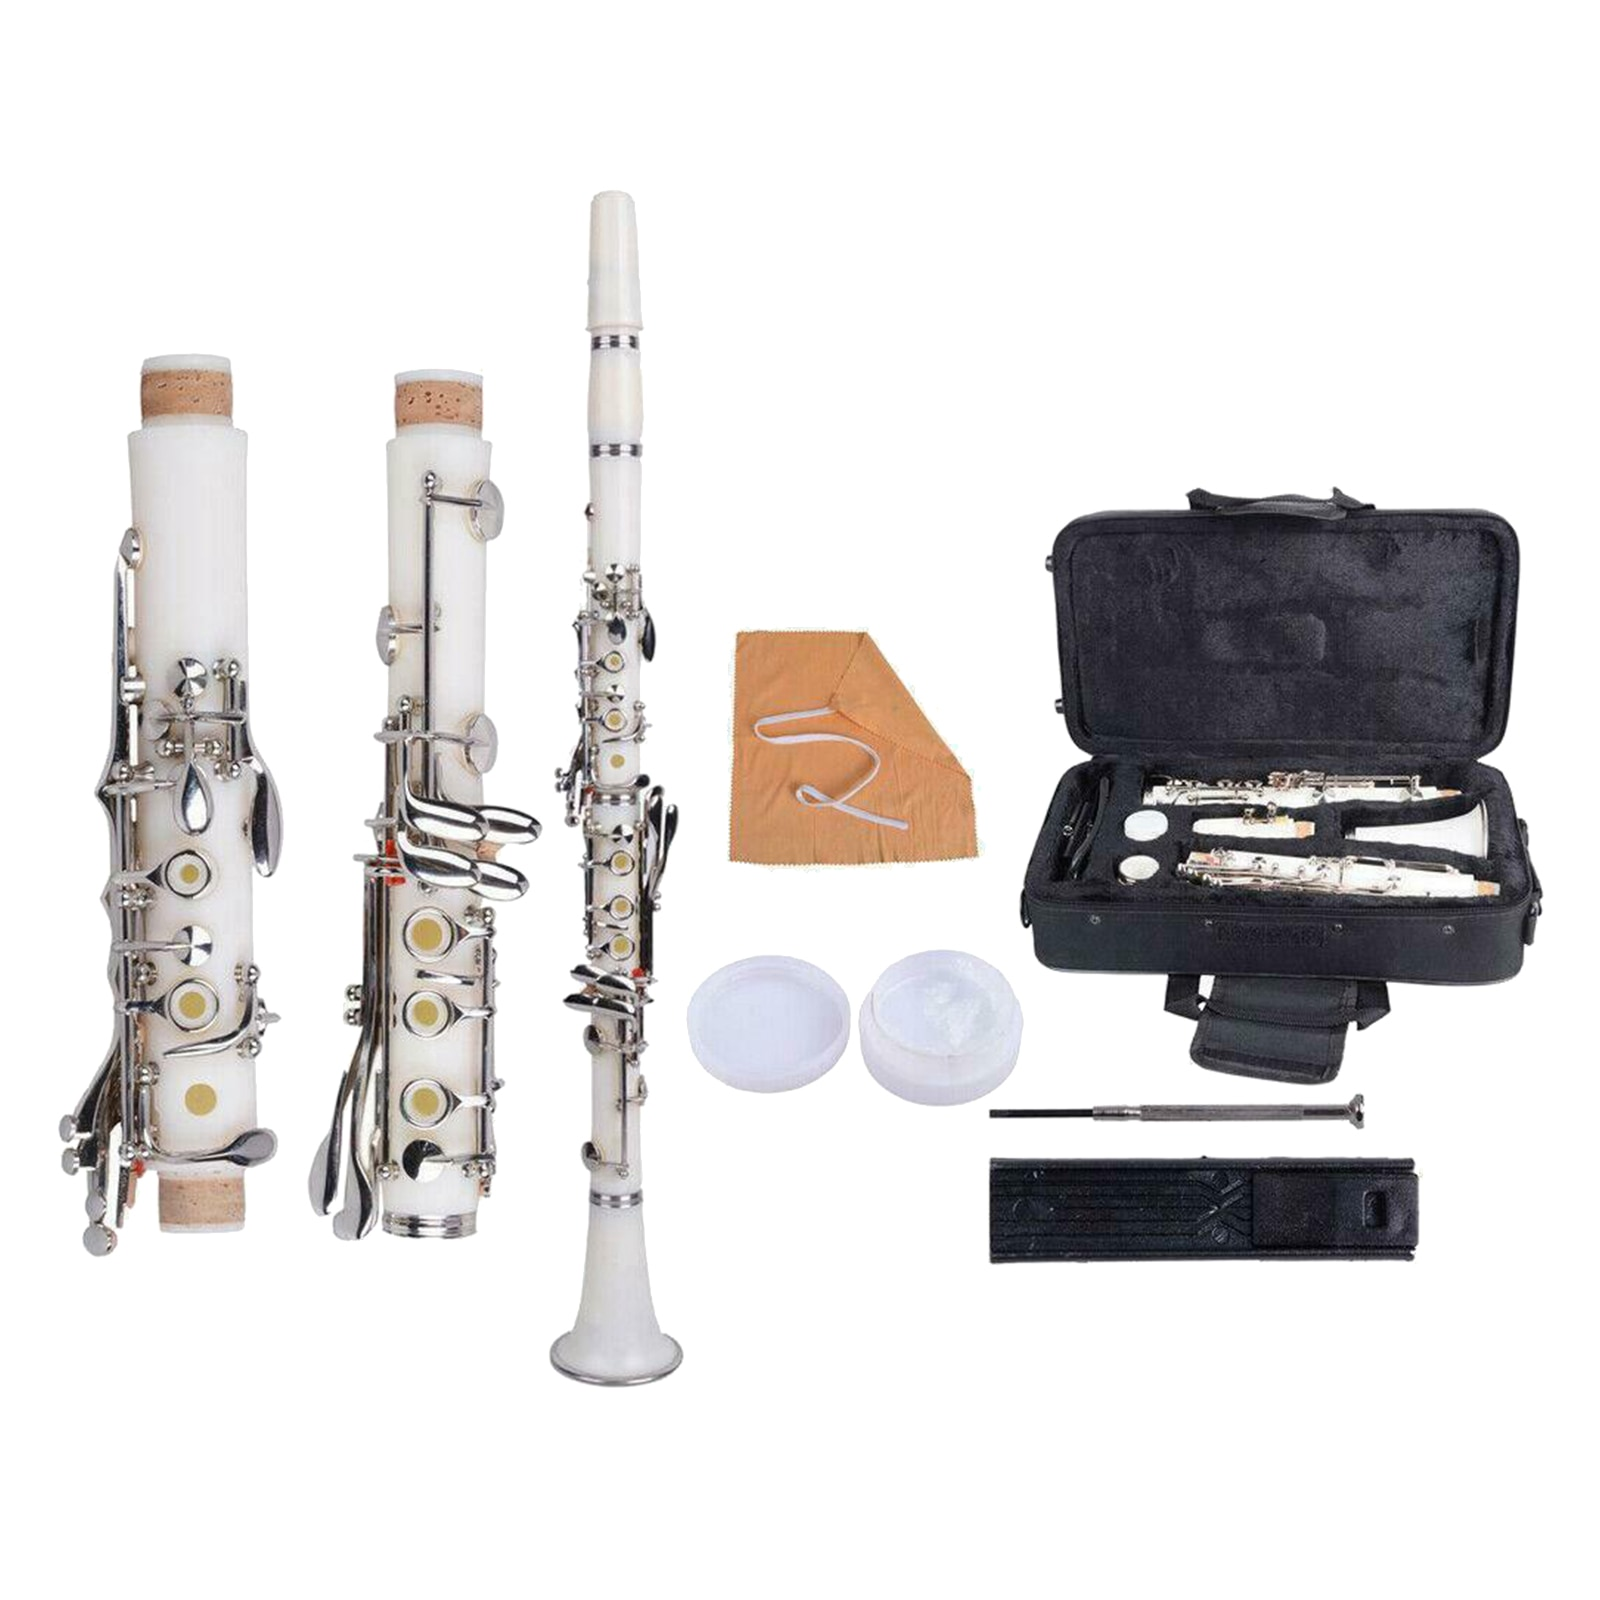 B Flat Beginner Student Clarinet with Case, Cleaning Cloth,Gloves,Reeds,Reeds Clip and Screwdriver Musical Instruments Kit enlarge